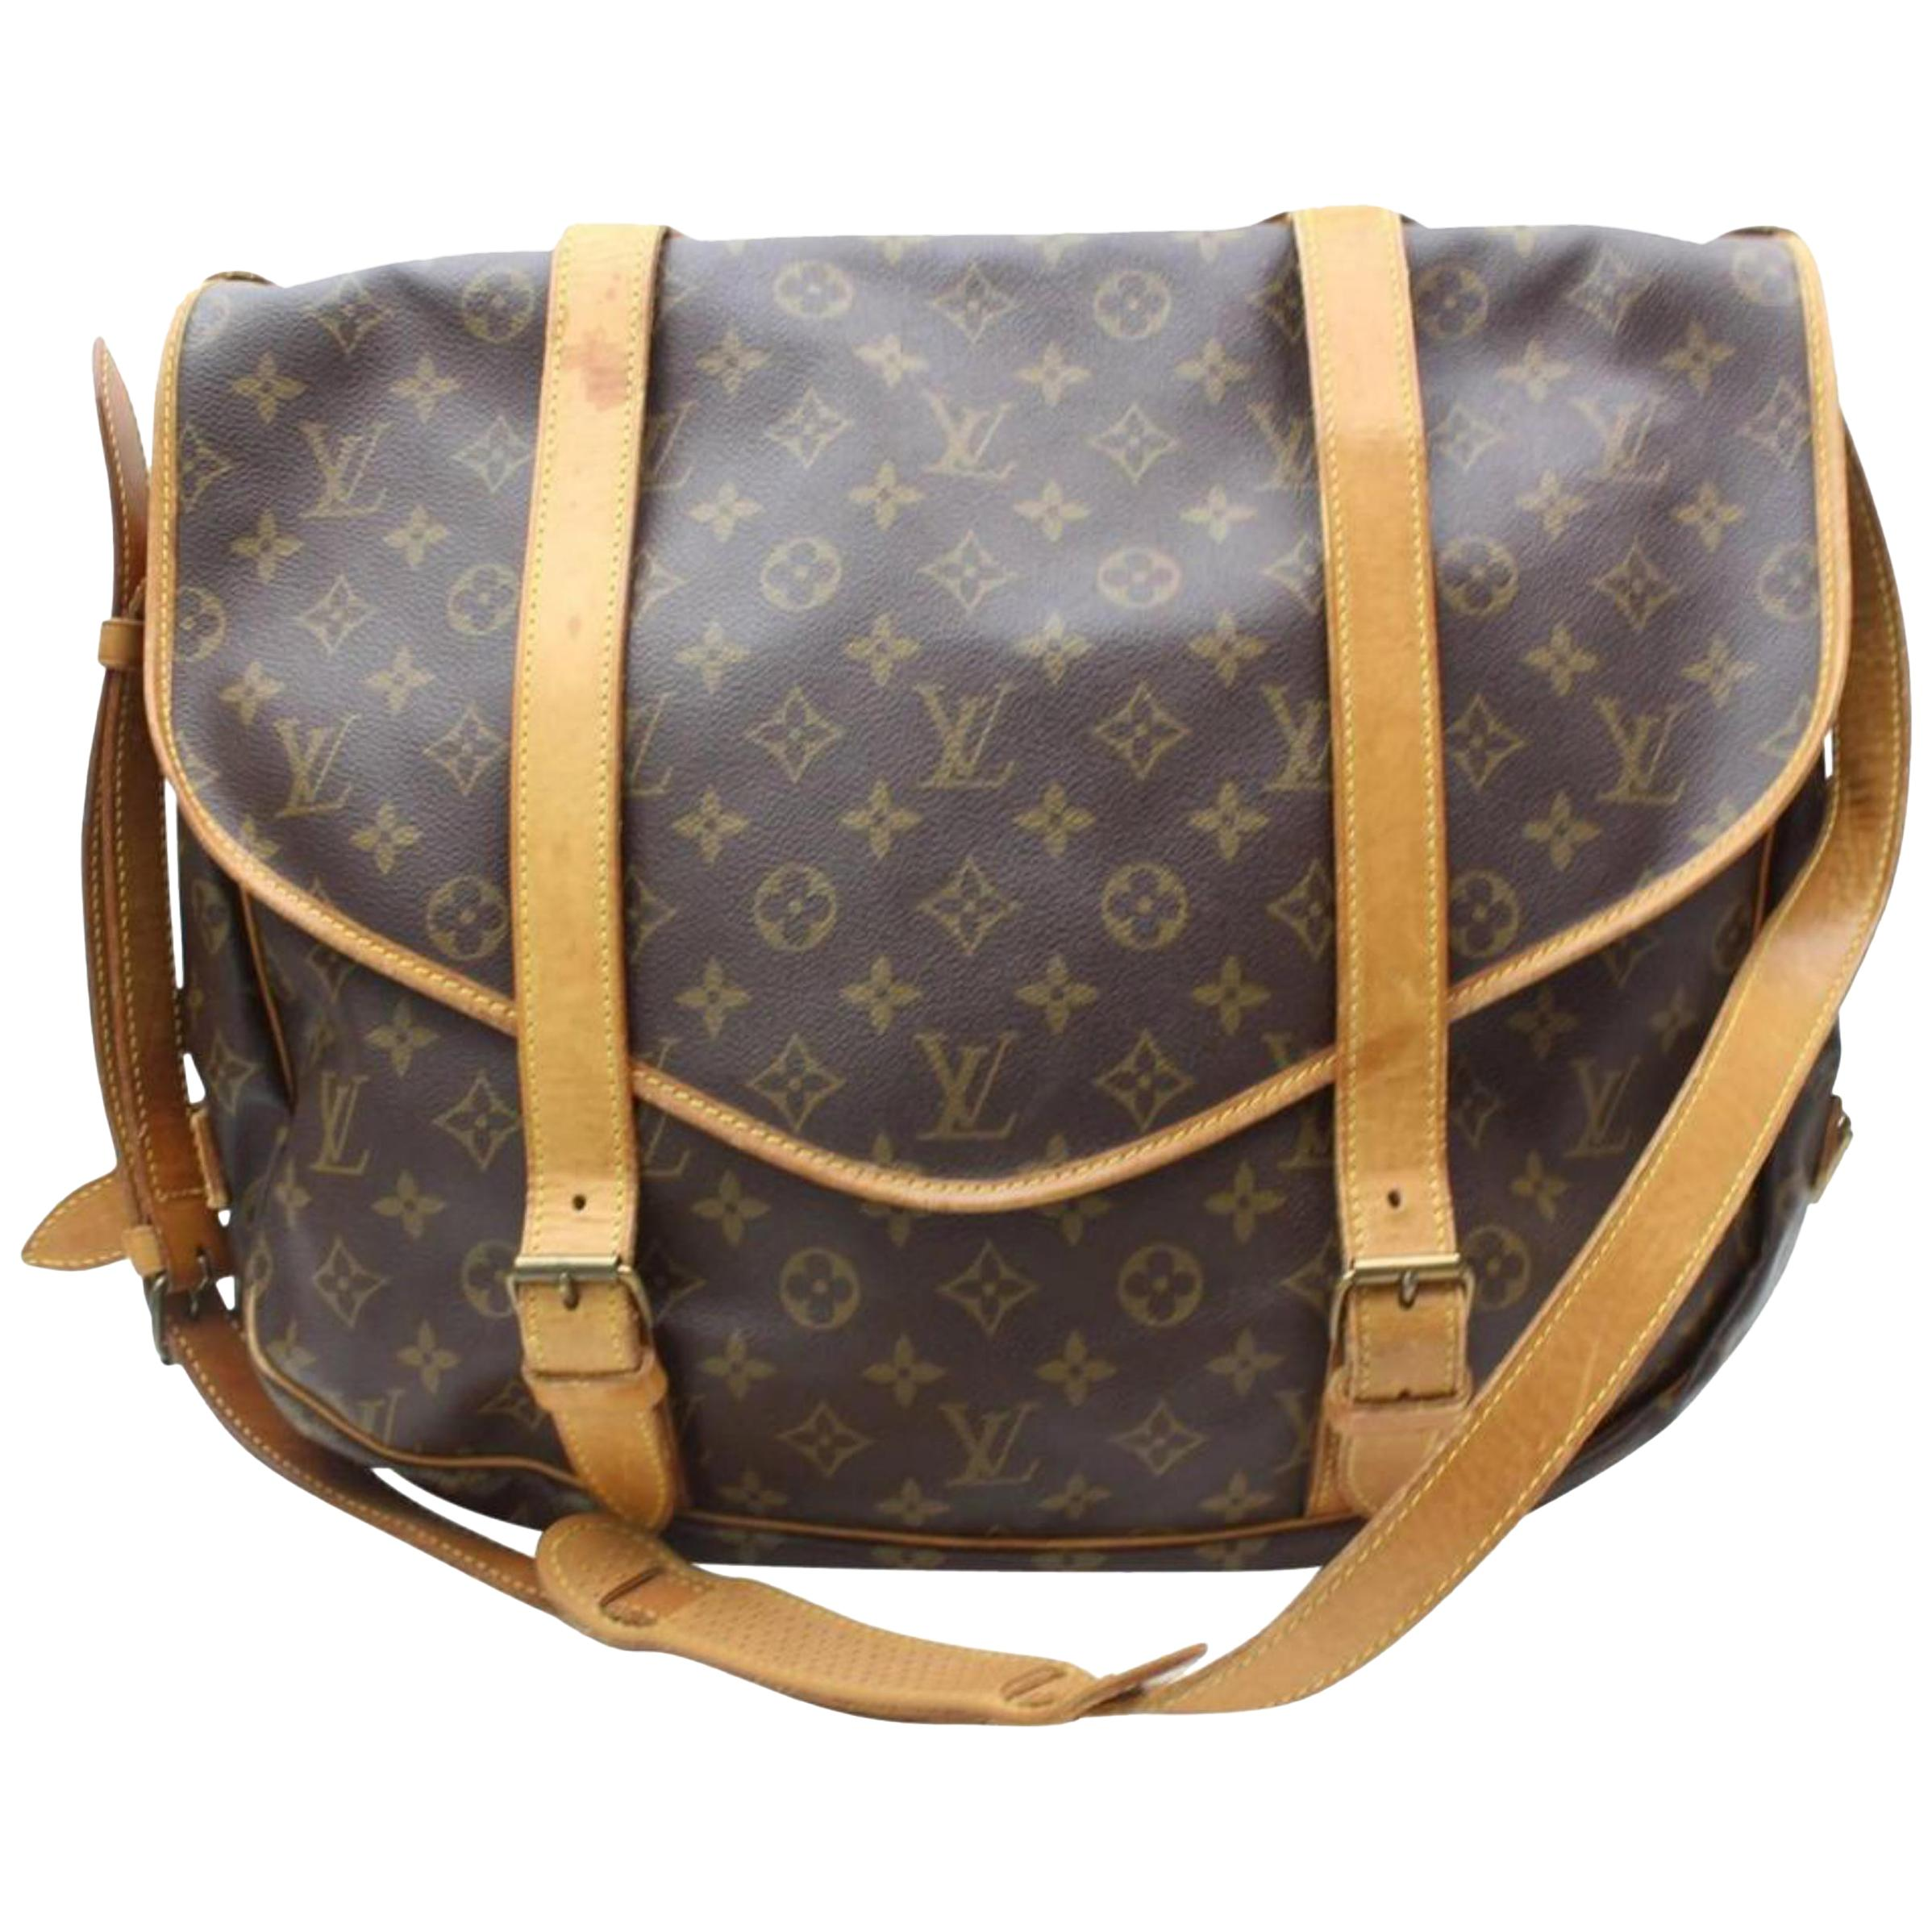 19be6e980e19 Louis Vuitton Brooklyn MM Damier Ebene Messenger Bag Discontinued at 1stdibs